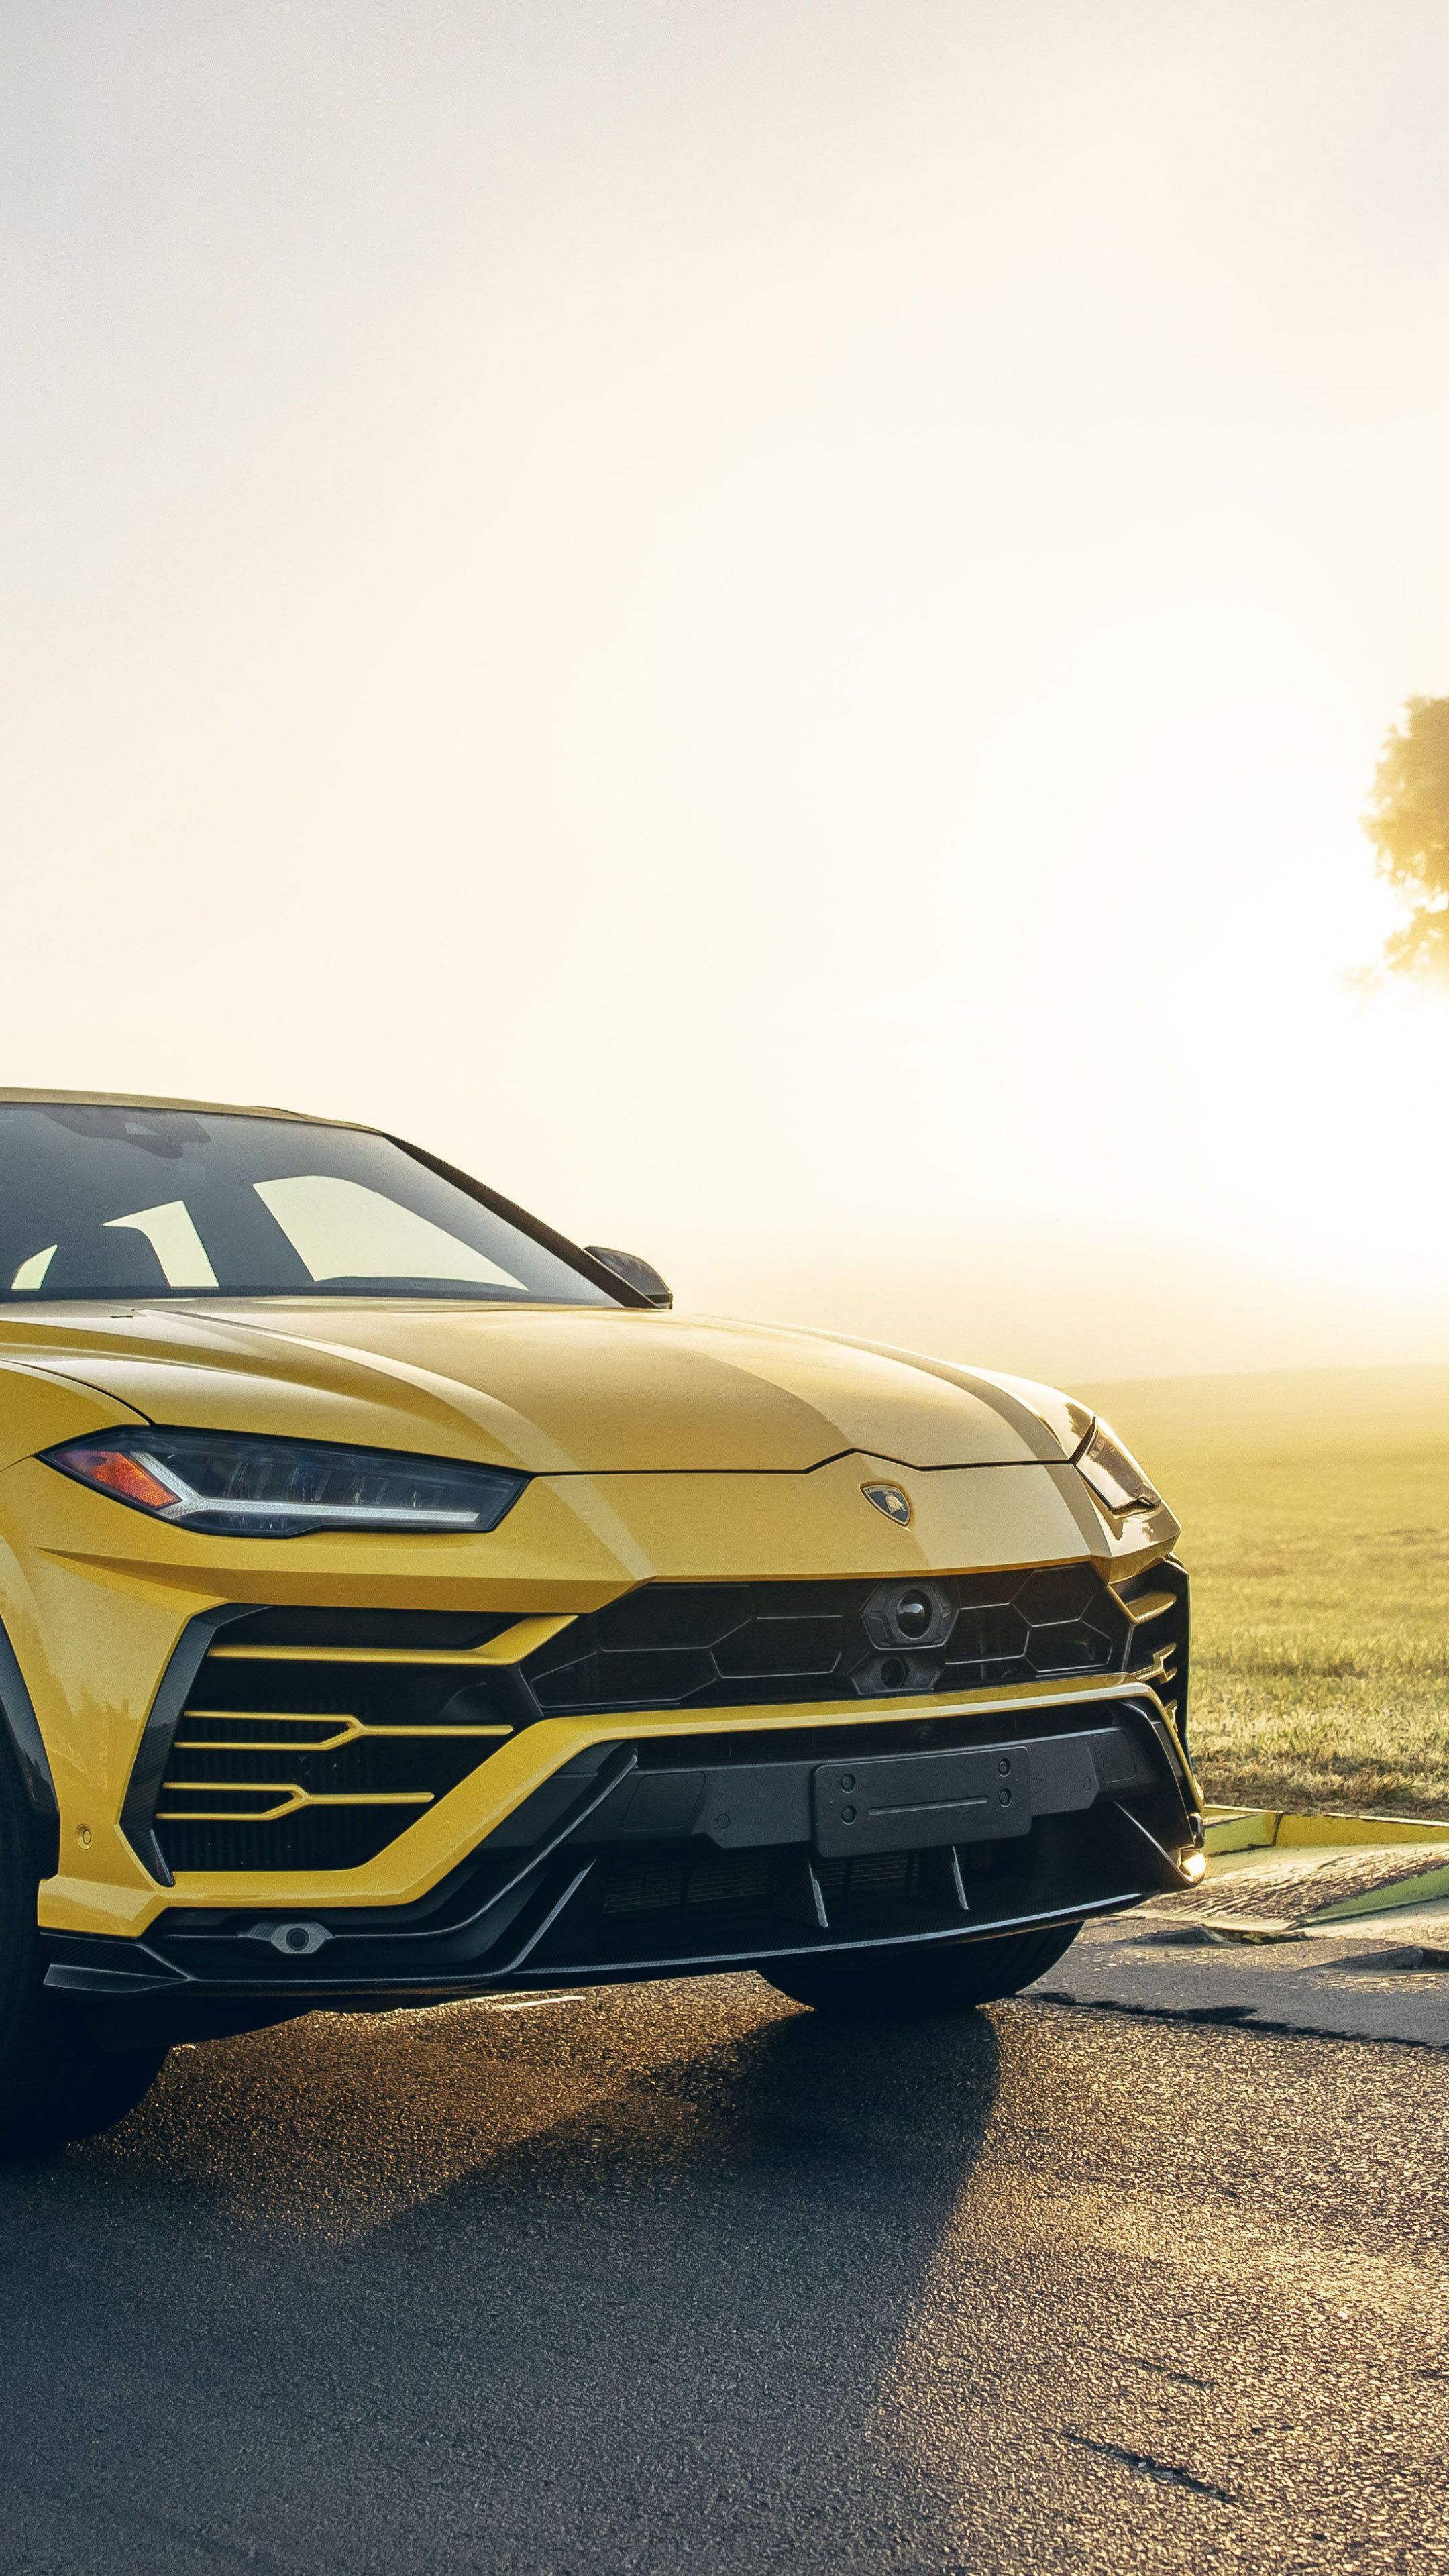 2160x3840 Car Yellow Lamborghini Urus Compact Car Wallpaper Lamborghini Sports Car Wallpaper Car Wallpapers